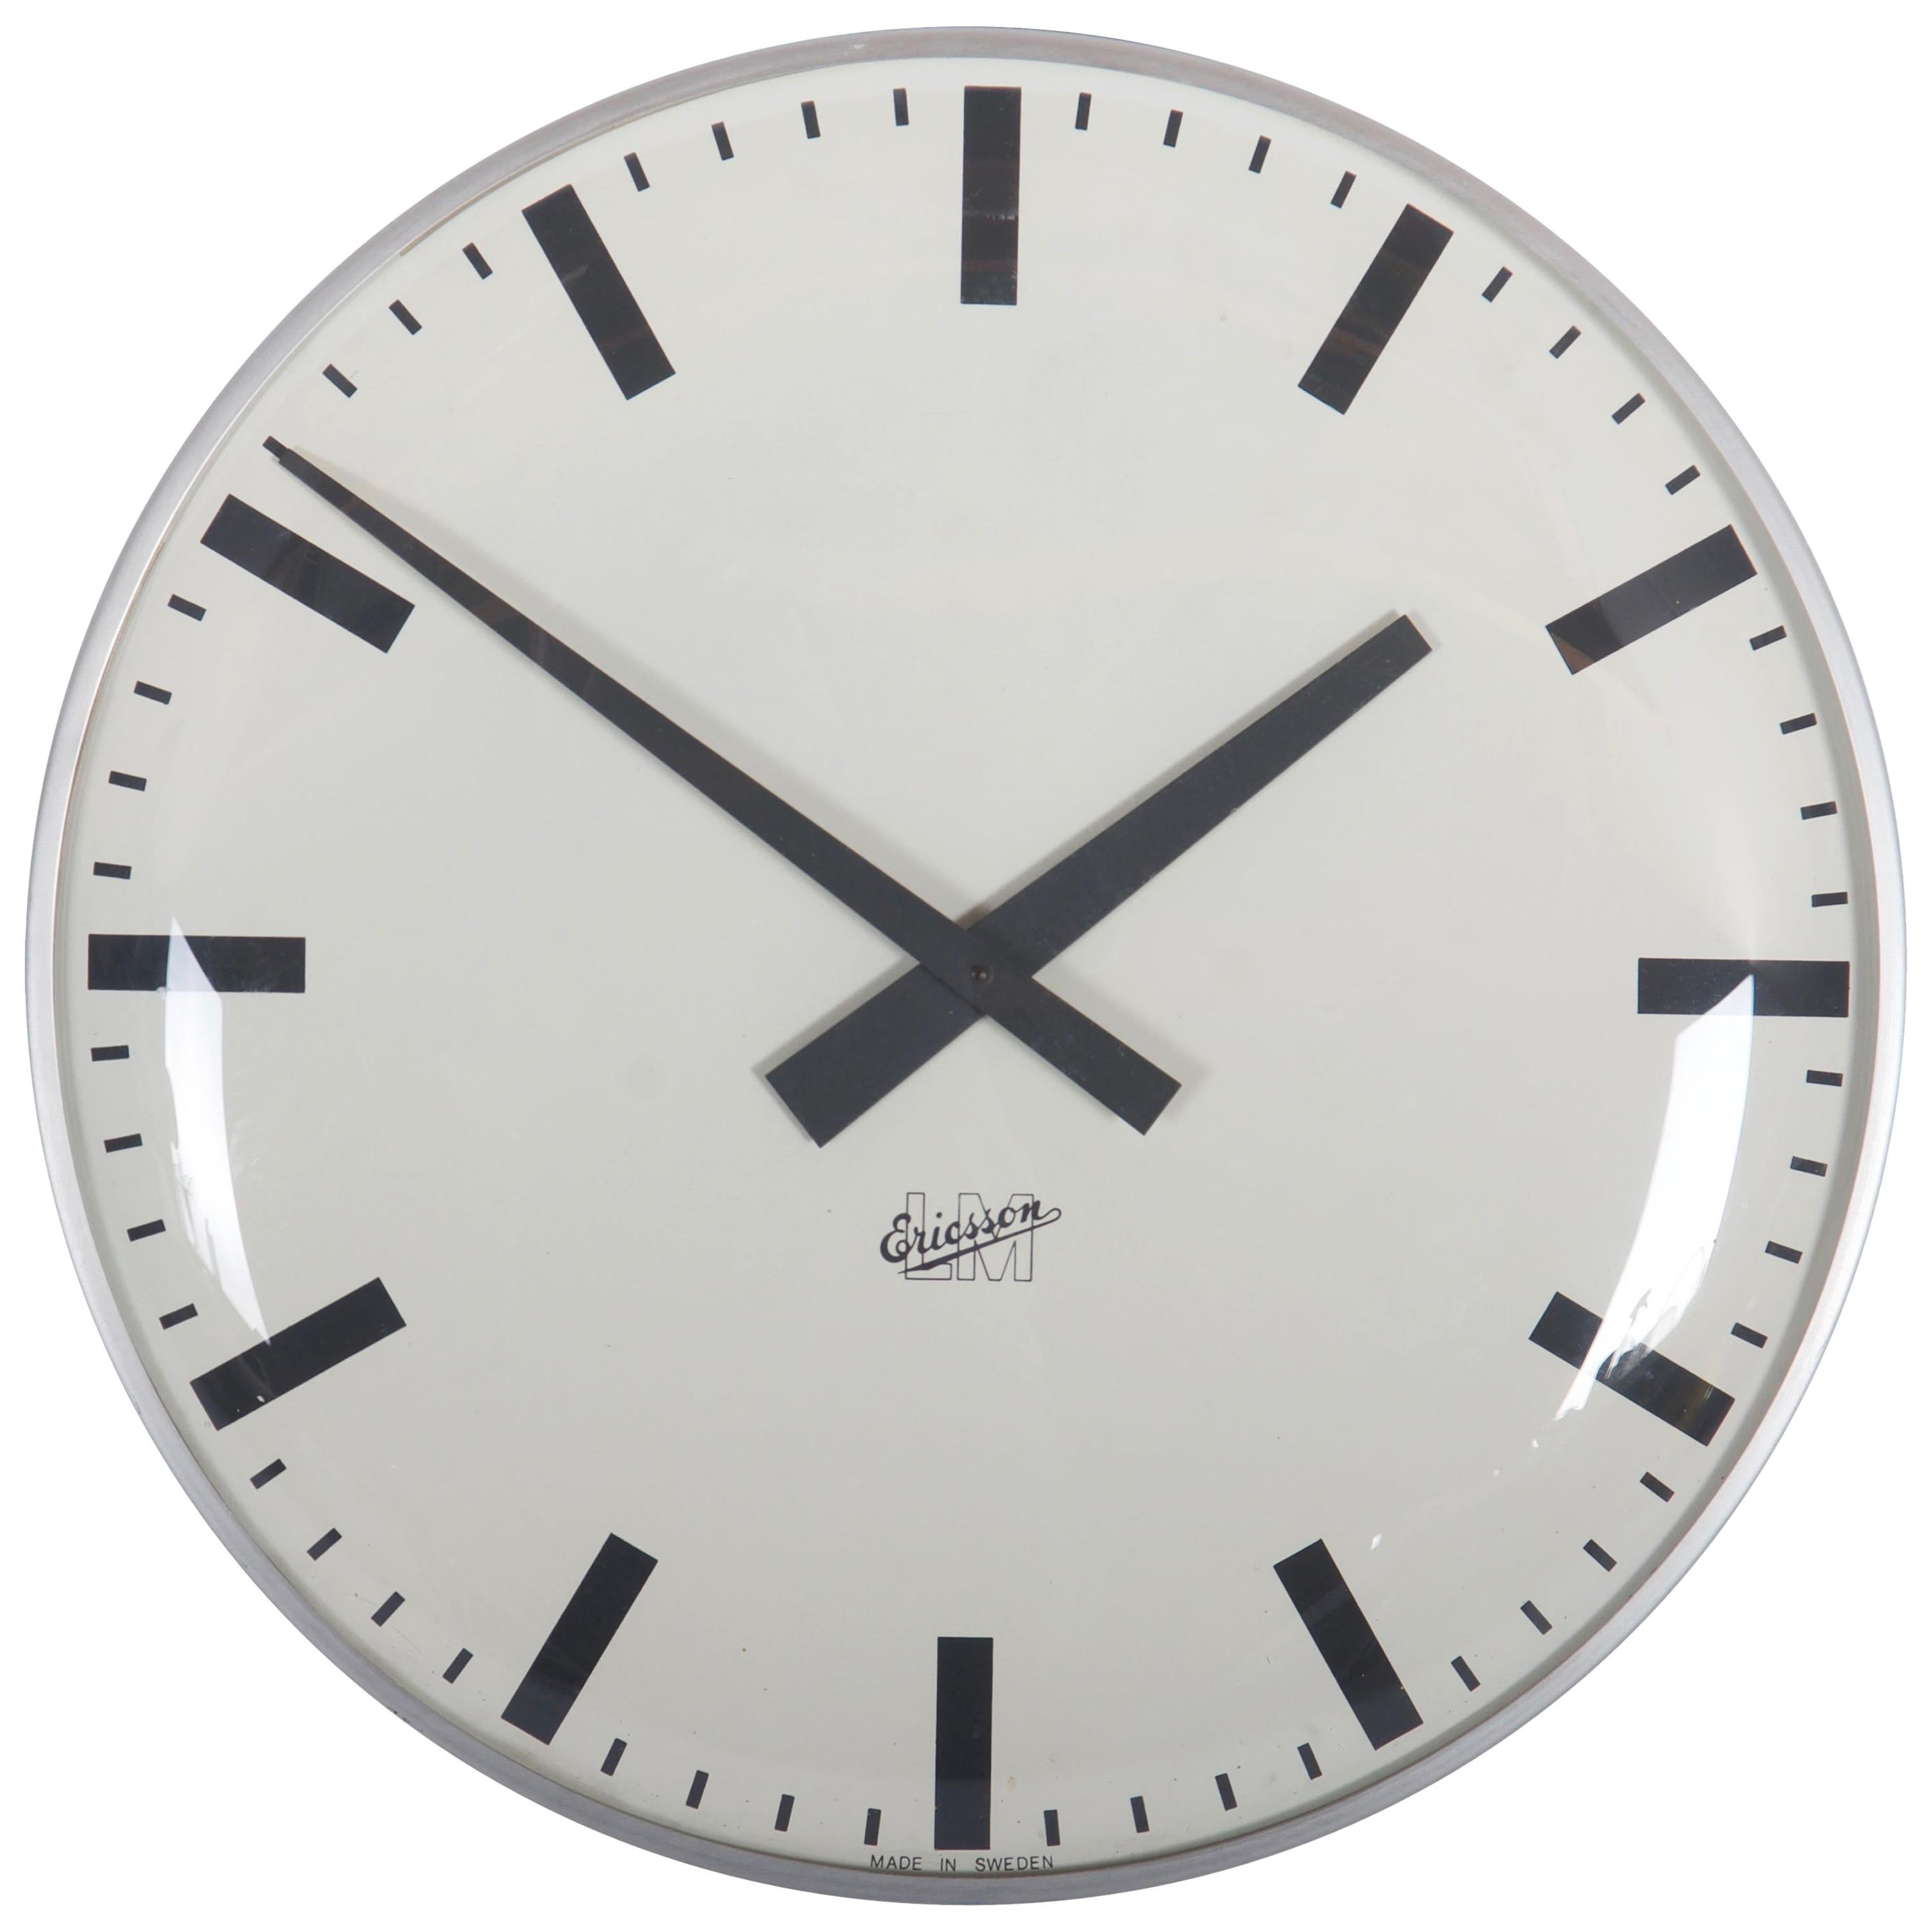 Large Midcentury Wall Clock by LM Ericsson